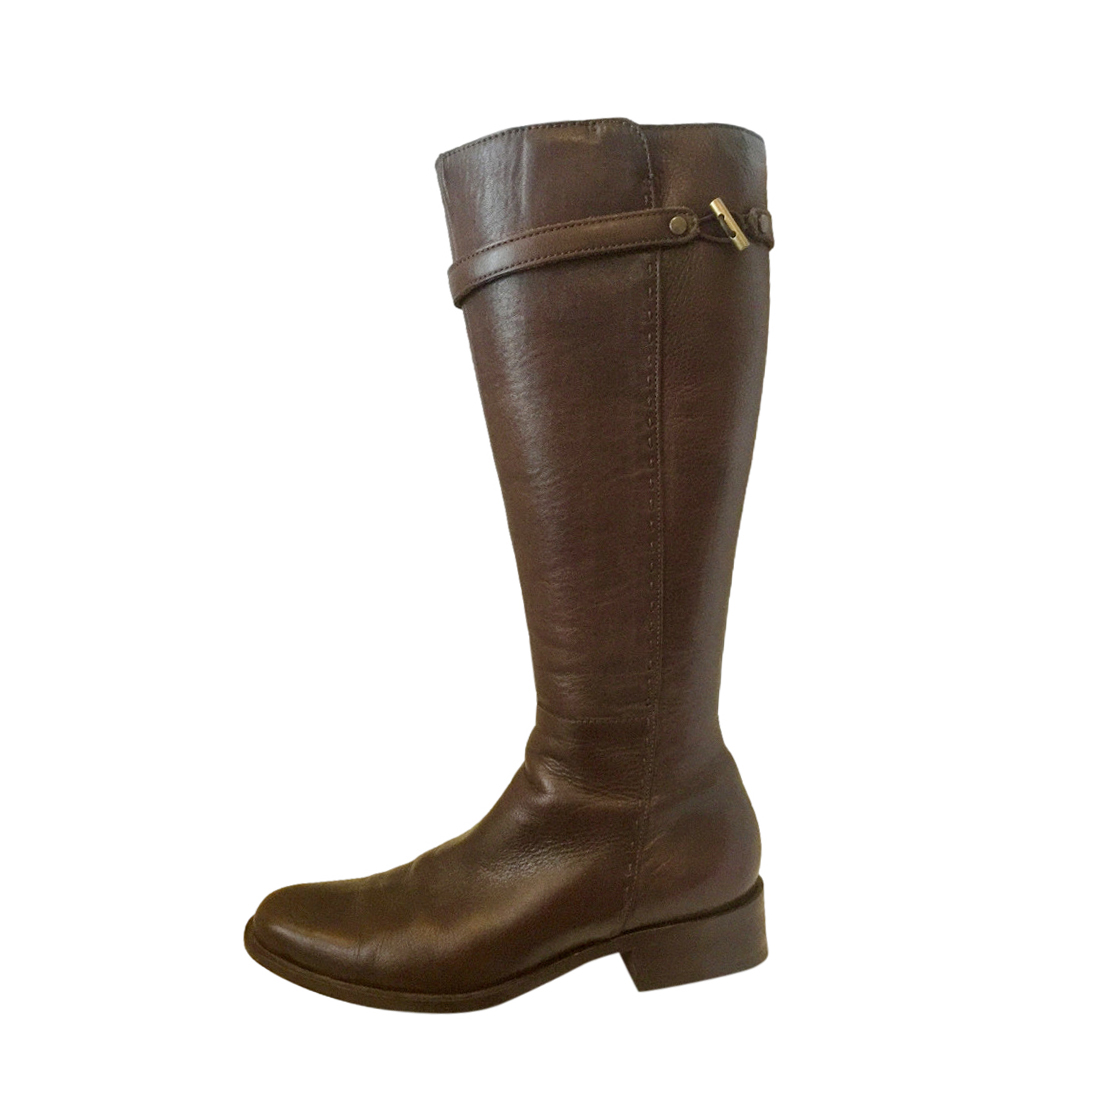 Max Mara Brown Leather Riding Boots